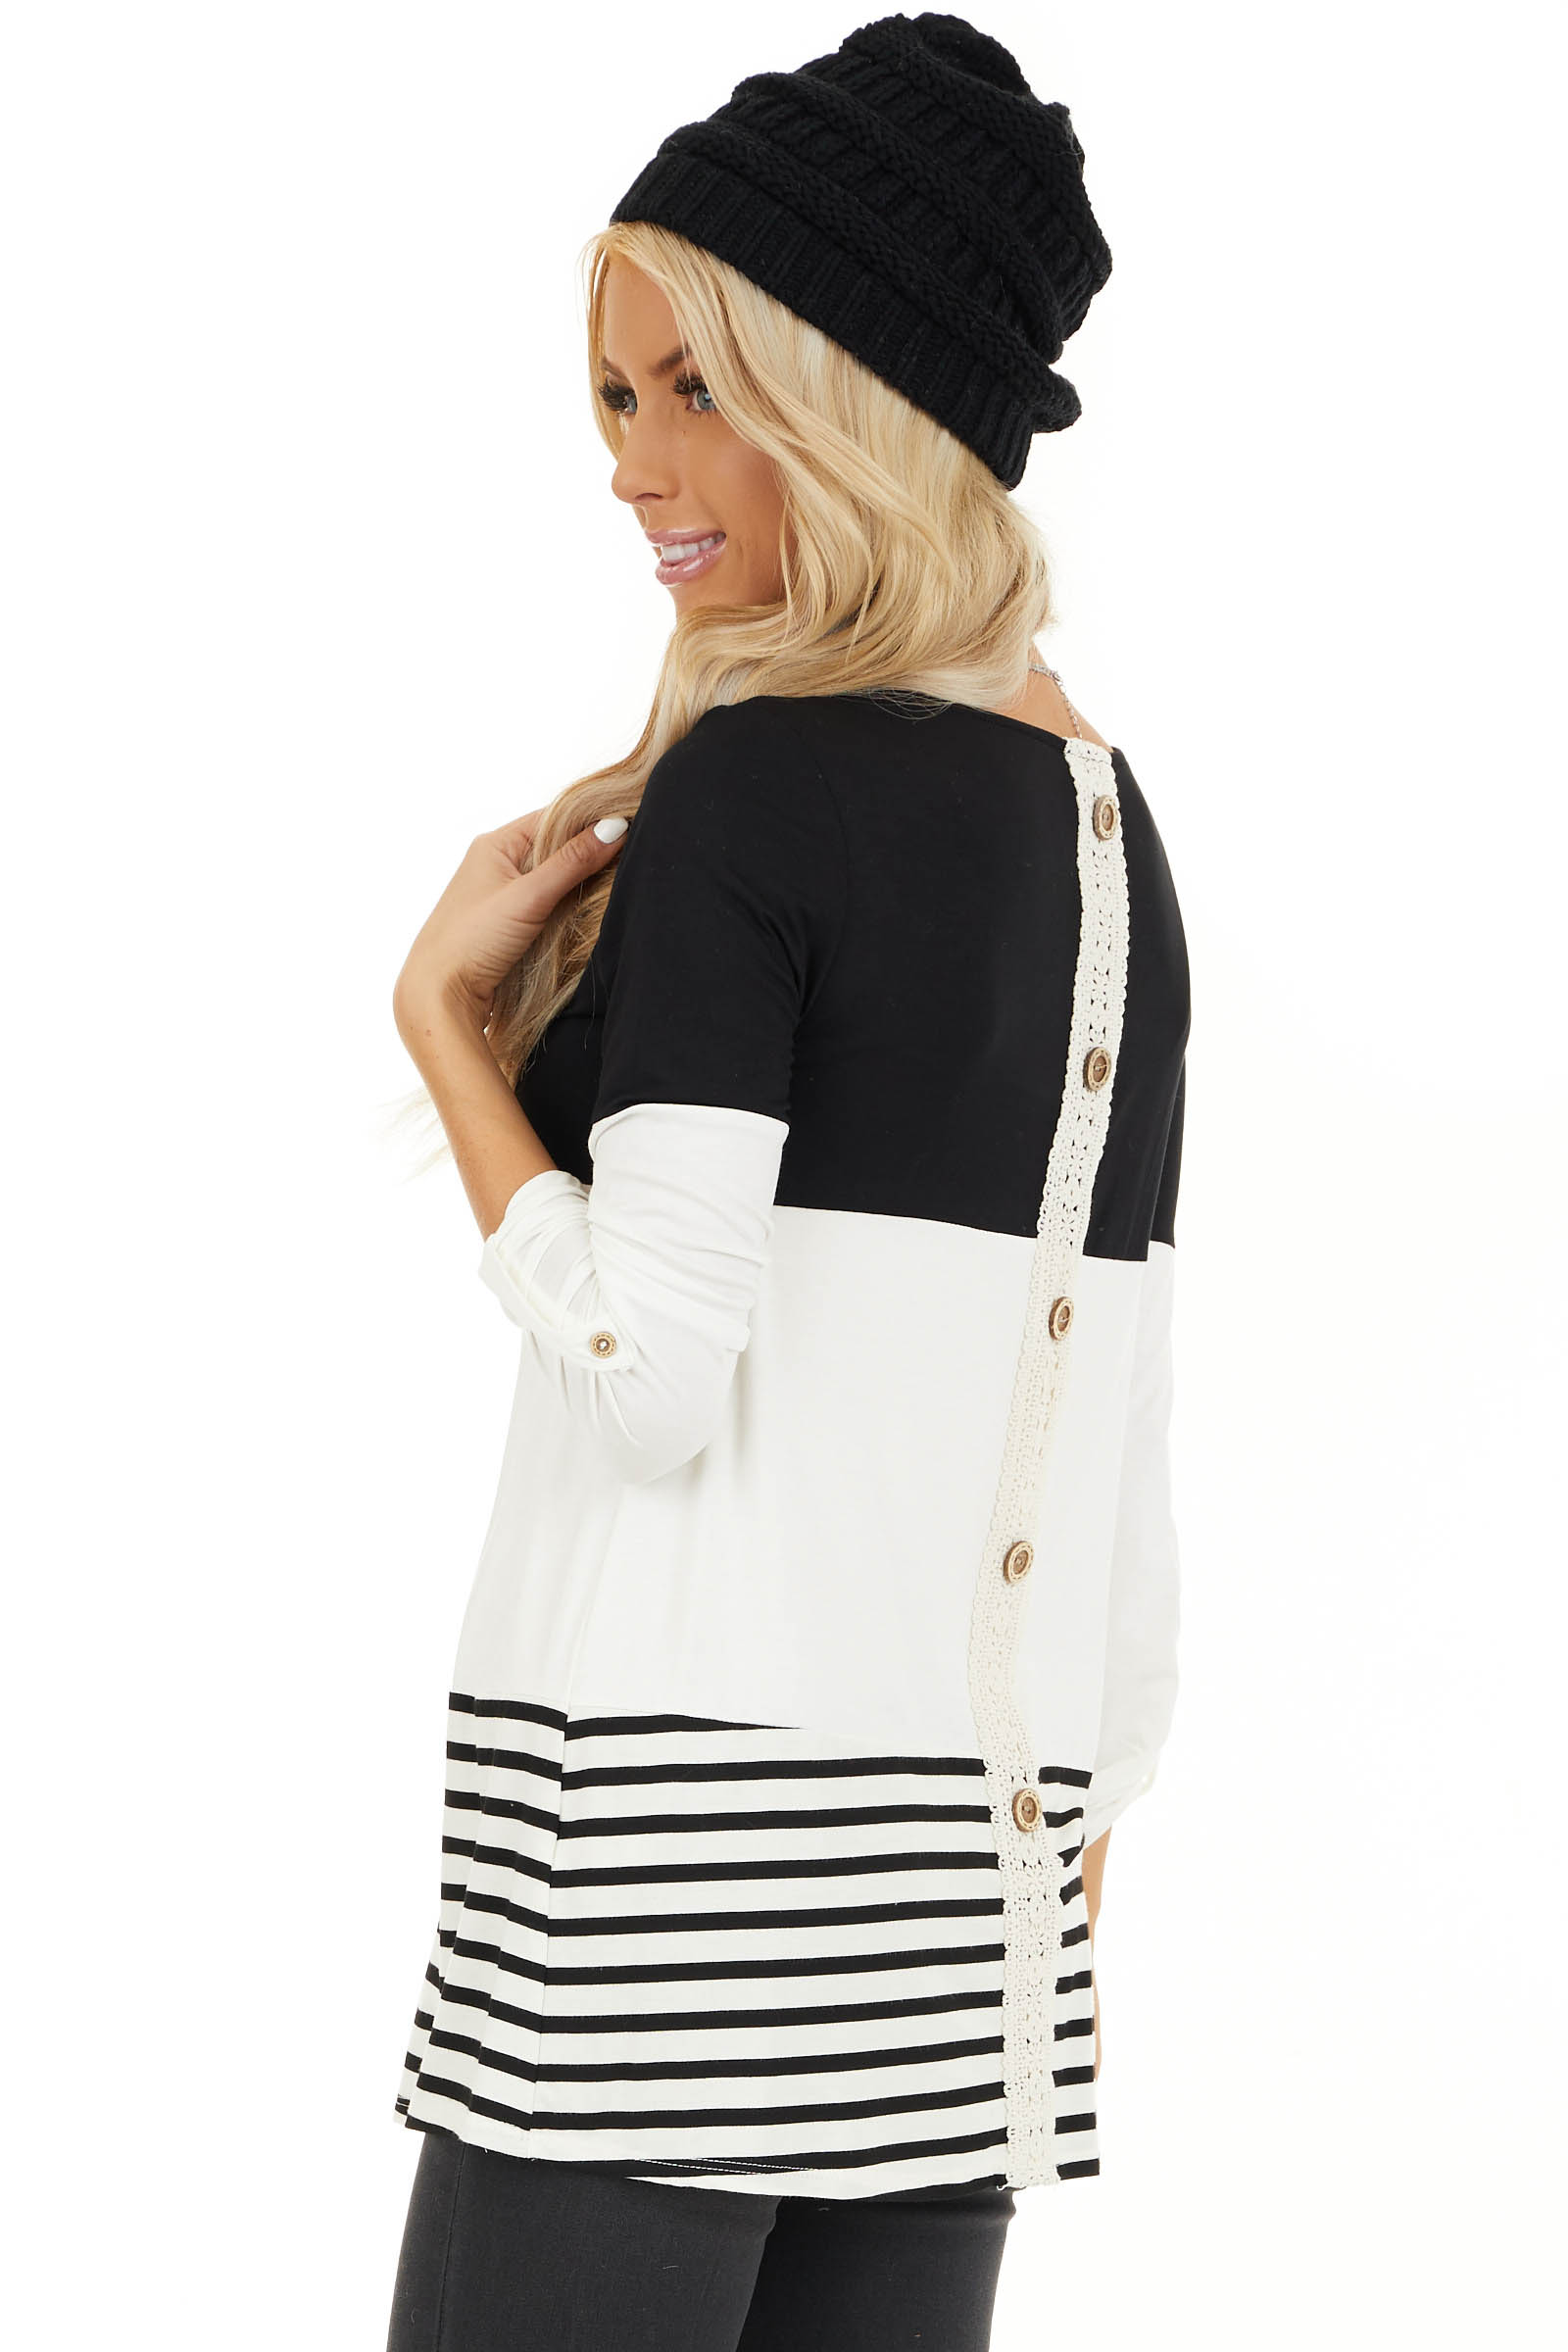 Black Color Block Top with Stripes and Crochet Lace Detail back side close up